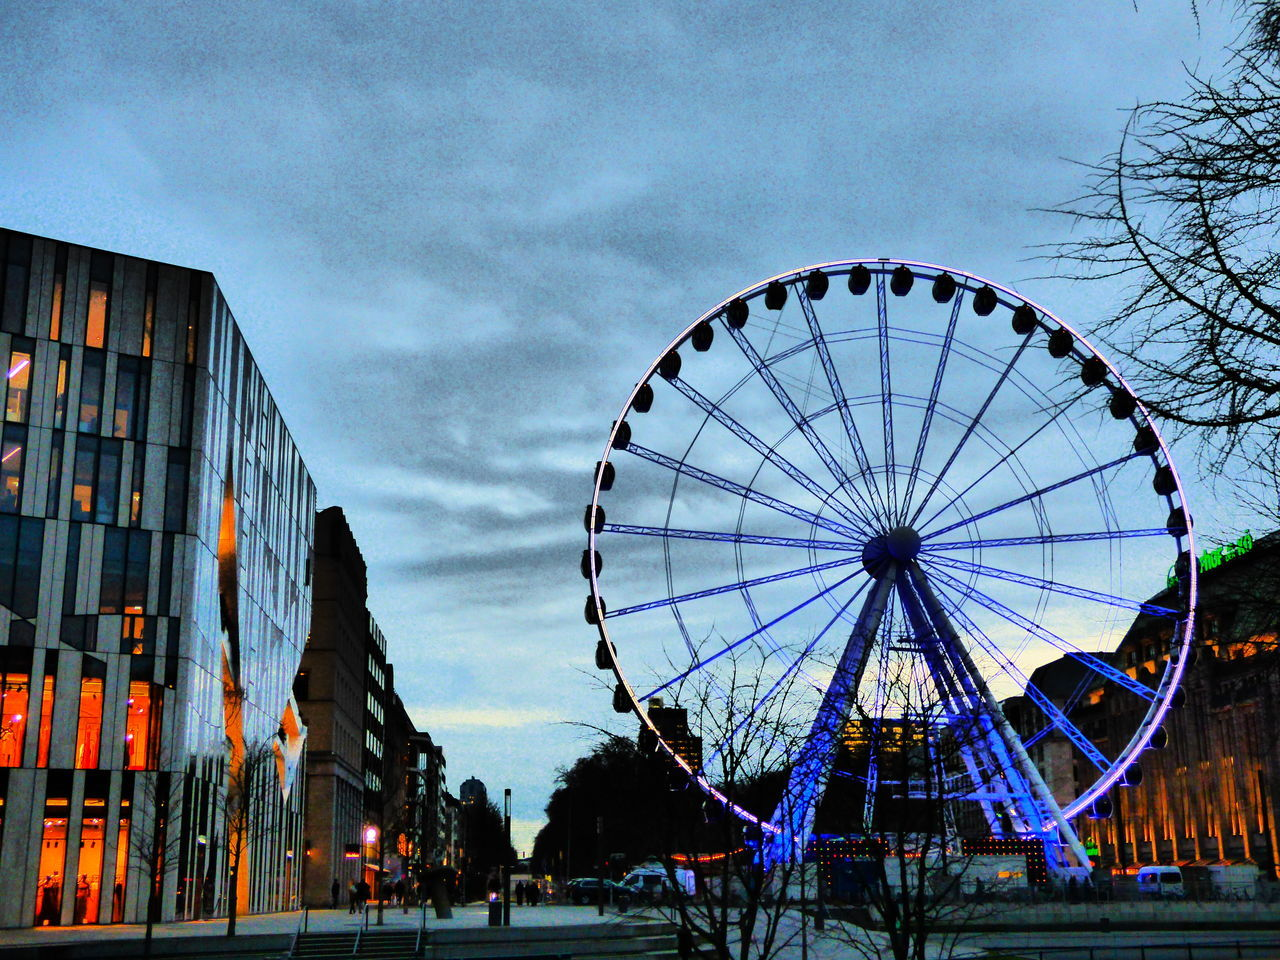 ferris wheel, low angle view, arts culture and entertainment, built structure, amusement park, architecture, sky, building exterior, outdoors, day, no people, big wheel